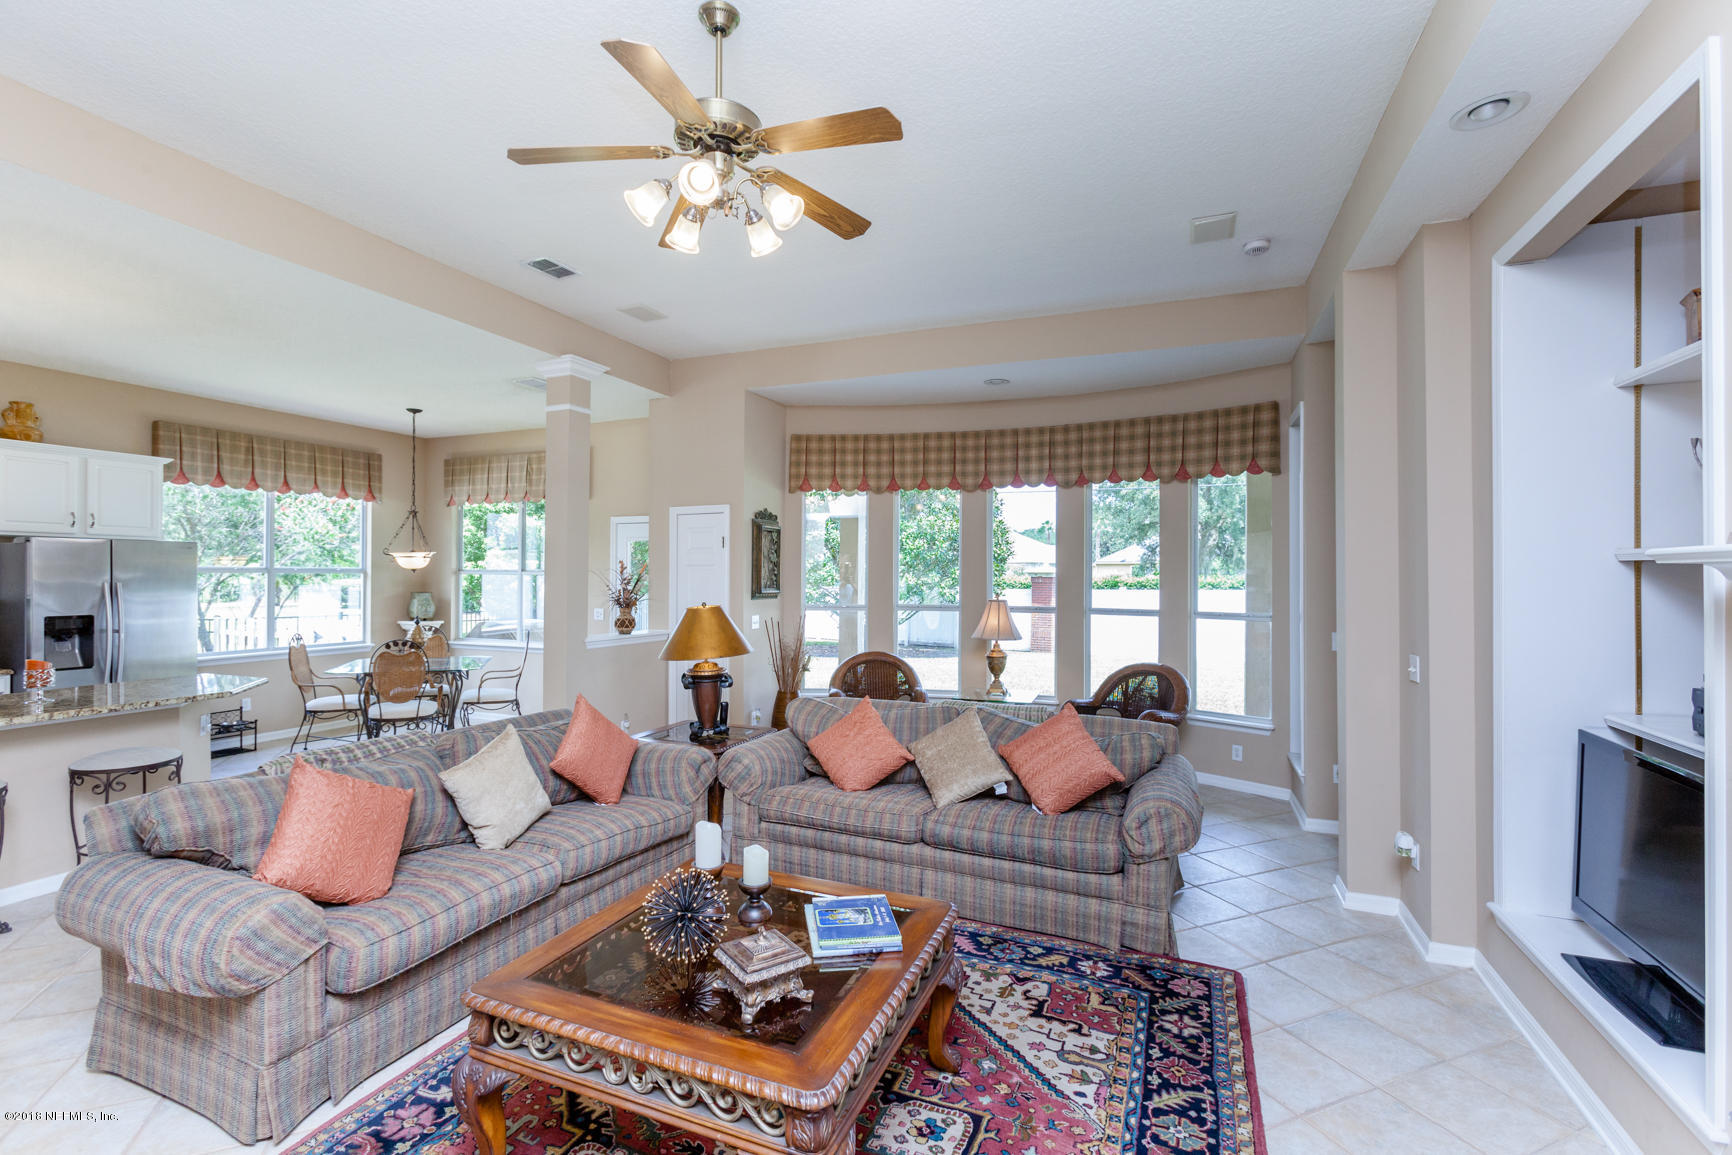 242 EDGEWATER BRANCH, ST JOHNS, FLORIDA 32259, 4 Bedrooms Bedrooms, ,3 BathroomsBathrooms,Residential - single family,For sale,EDGEWATER BRANCH,958894